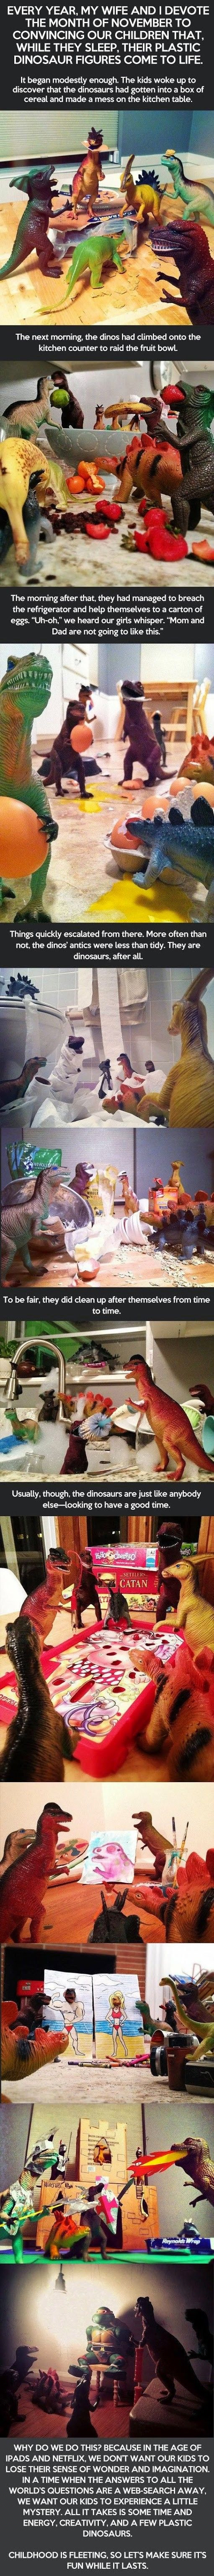 "(Pb) Little Helpers ♥ on Pinterest | @djohnisee ~ PIC:  infographic: Dedicate month of November to ""Dinosaur Figures Come Alive"" with antics & imagination."